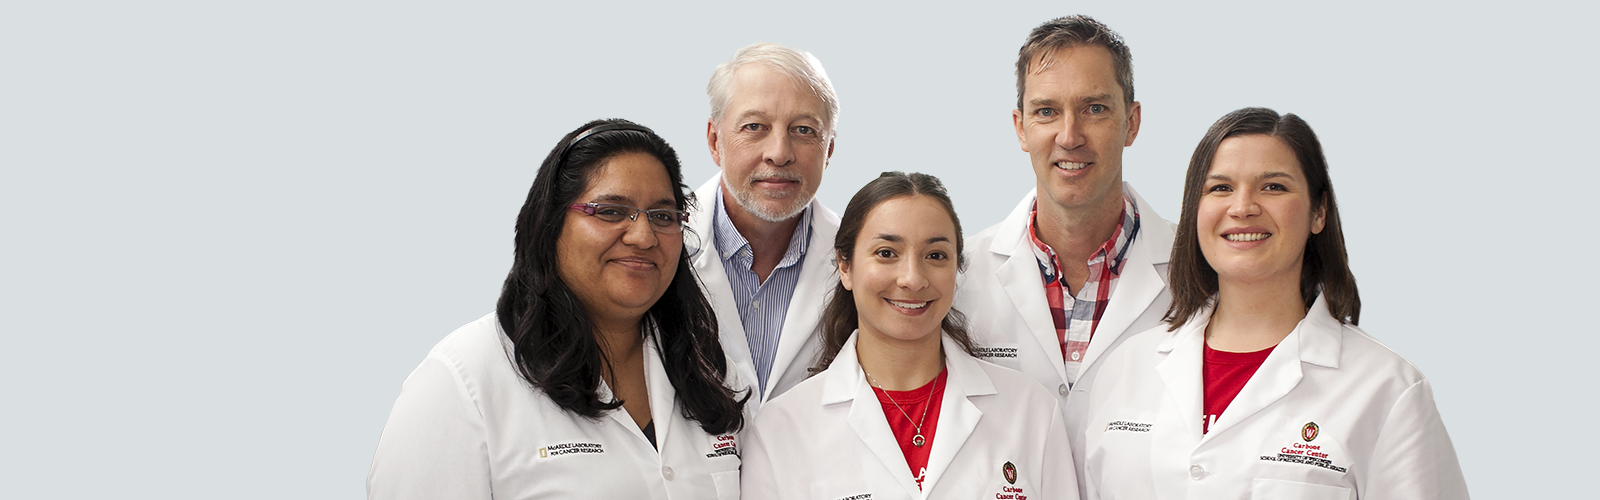 Five UW Health physicians in their lab coats posing for the camera.